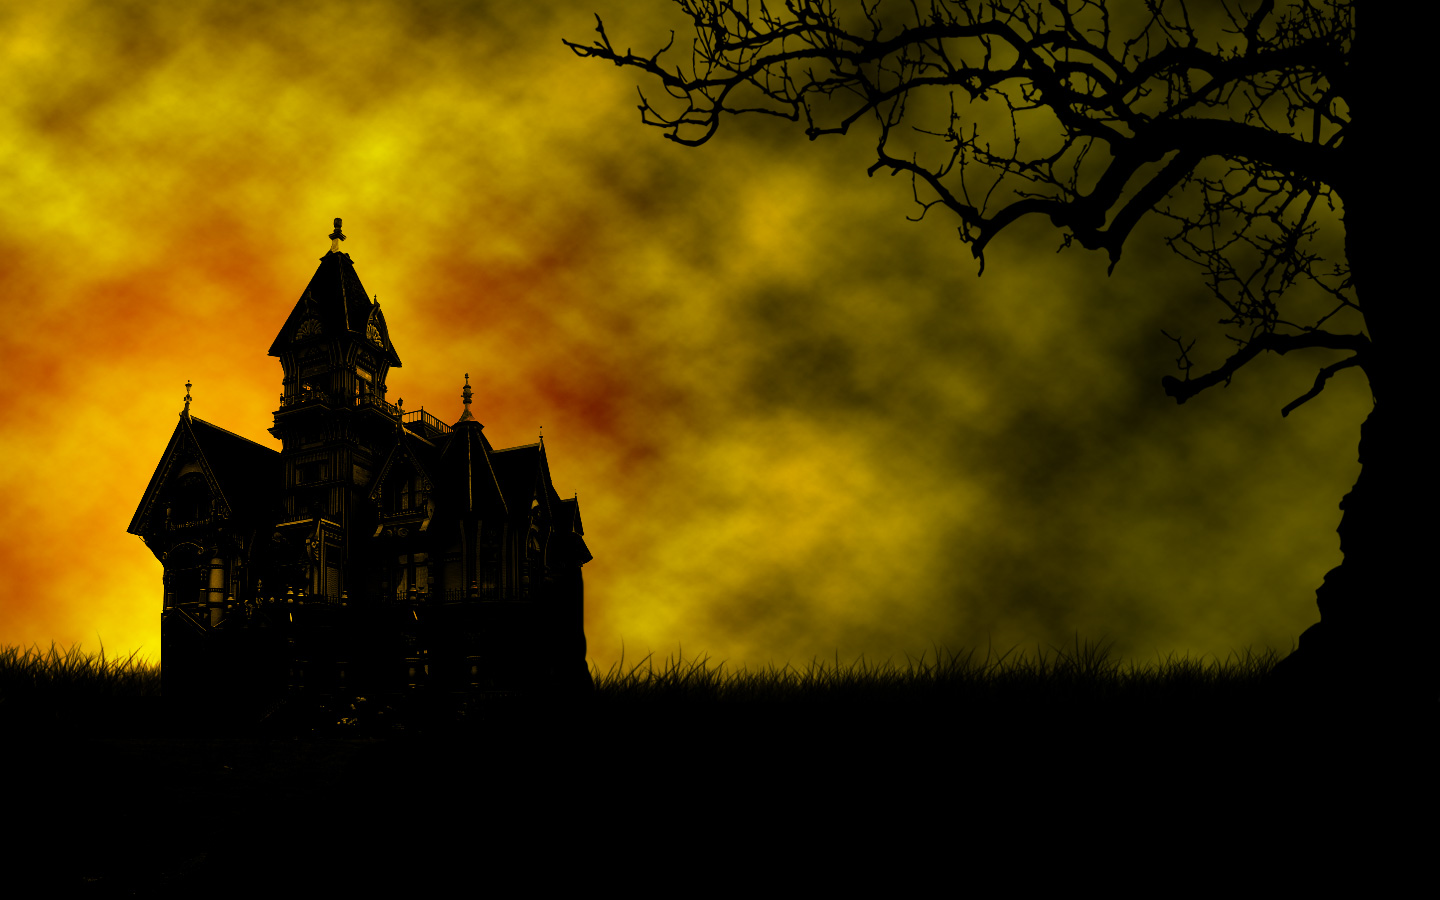 Halloween Wallpapers: Halloween MySpace Backgrounds, Free Halloween ...